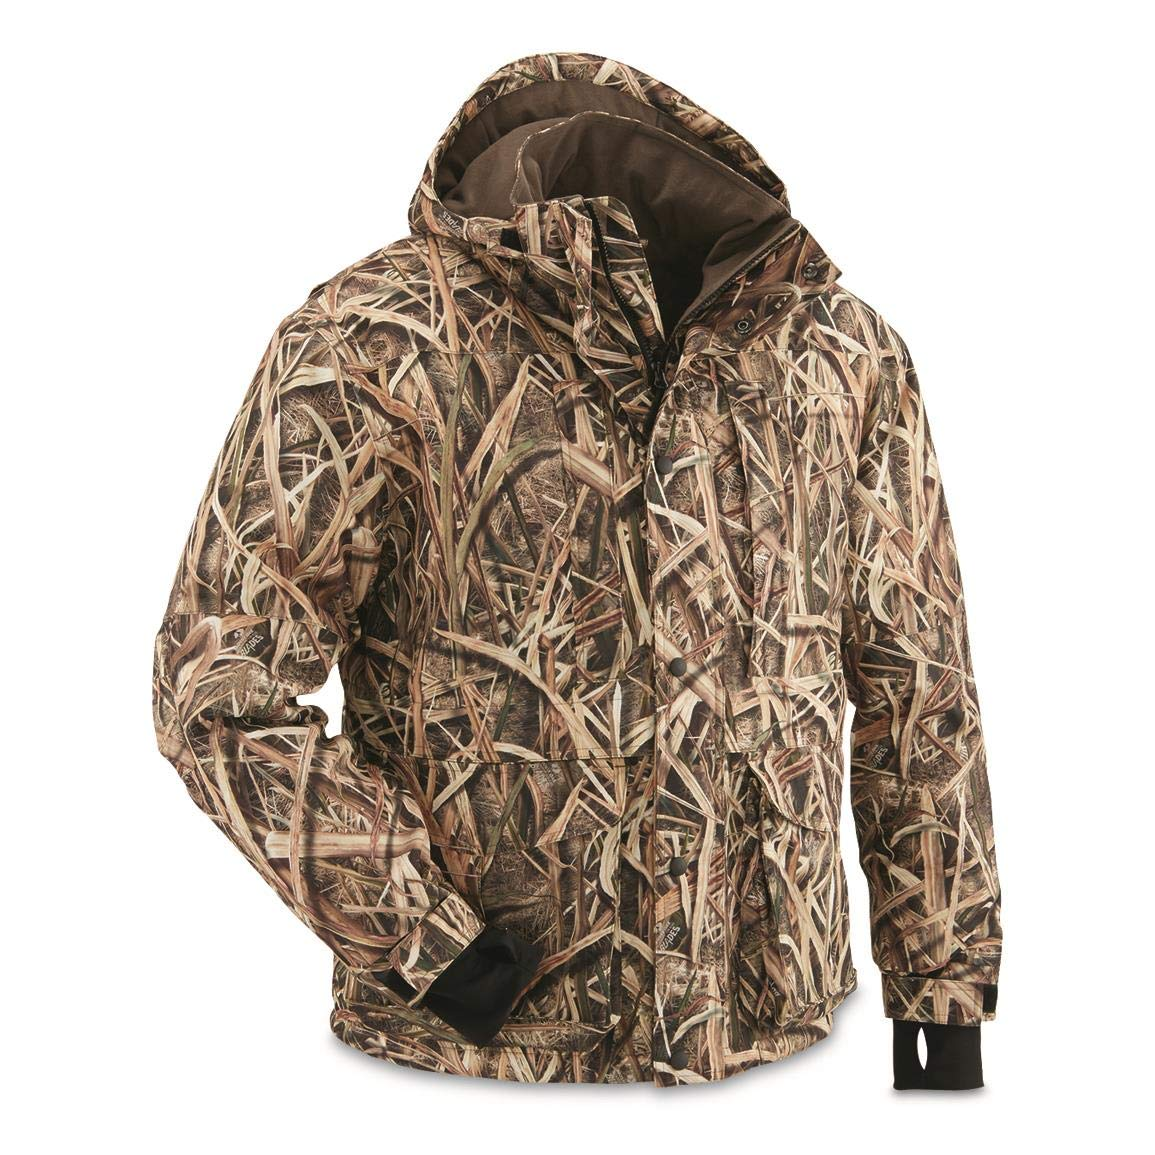 Guide Gear Men's Waterfowl Jacket, Shadow Grass Blades, L by Guide Gear